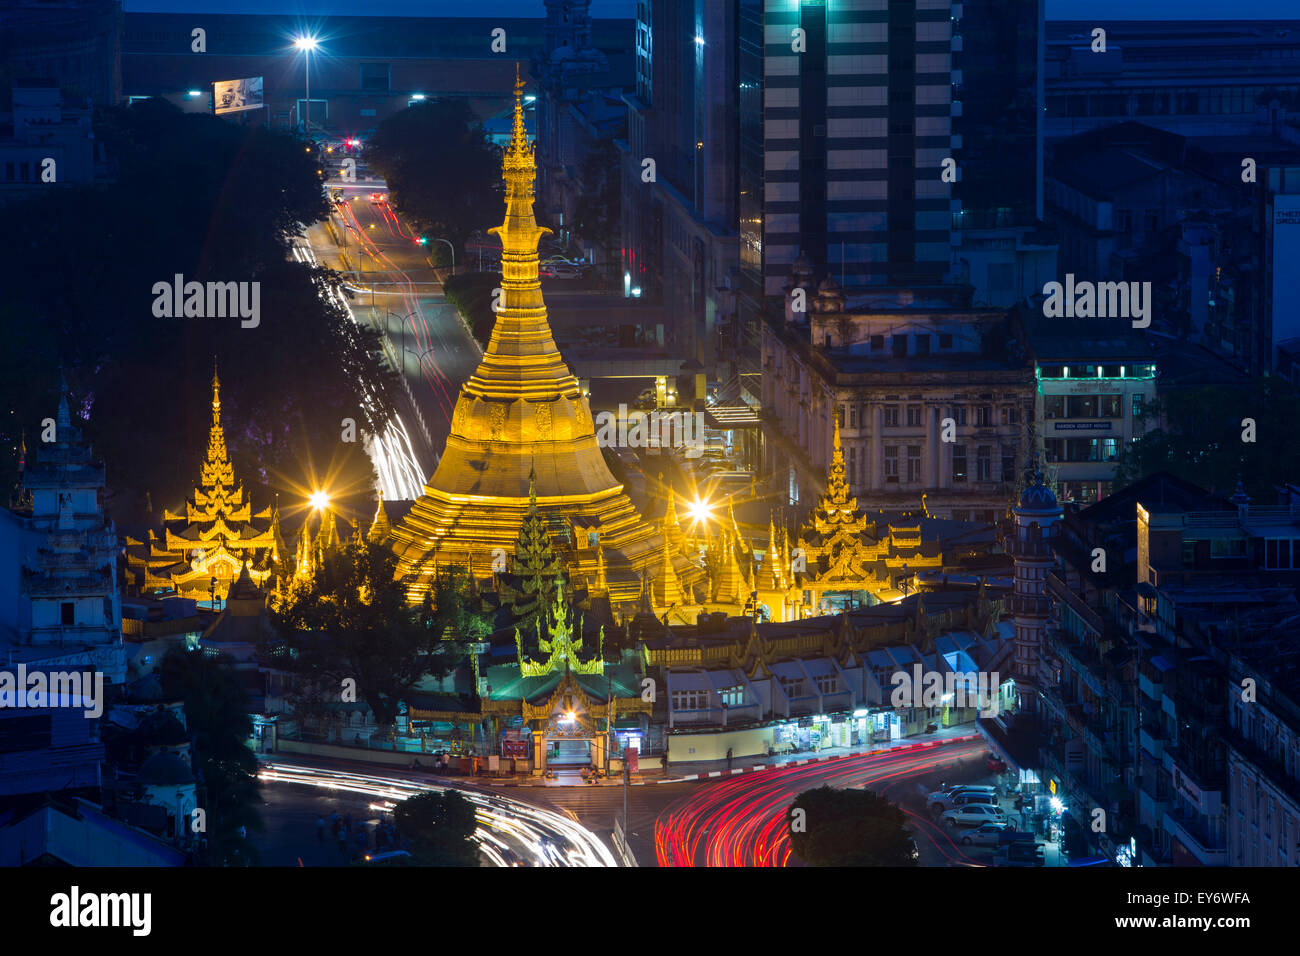 Sule Pagoda at night from Sakura Tower Sky Bar, Yangon, Myanmar - Stock Image